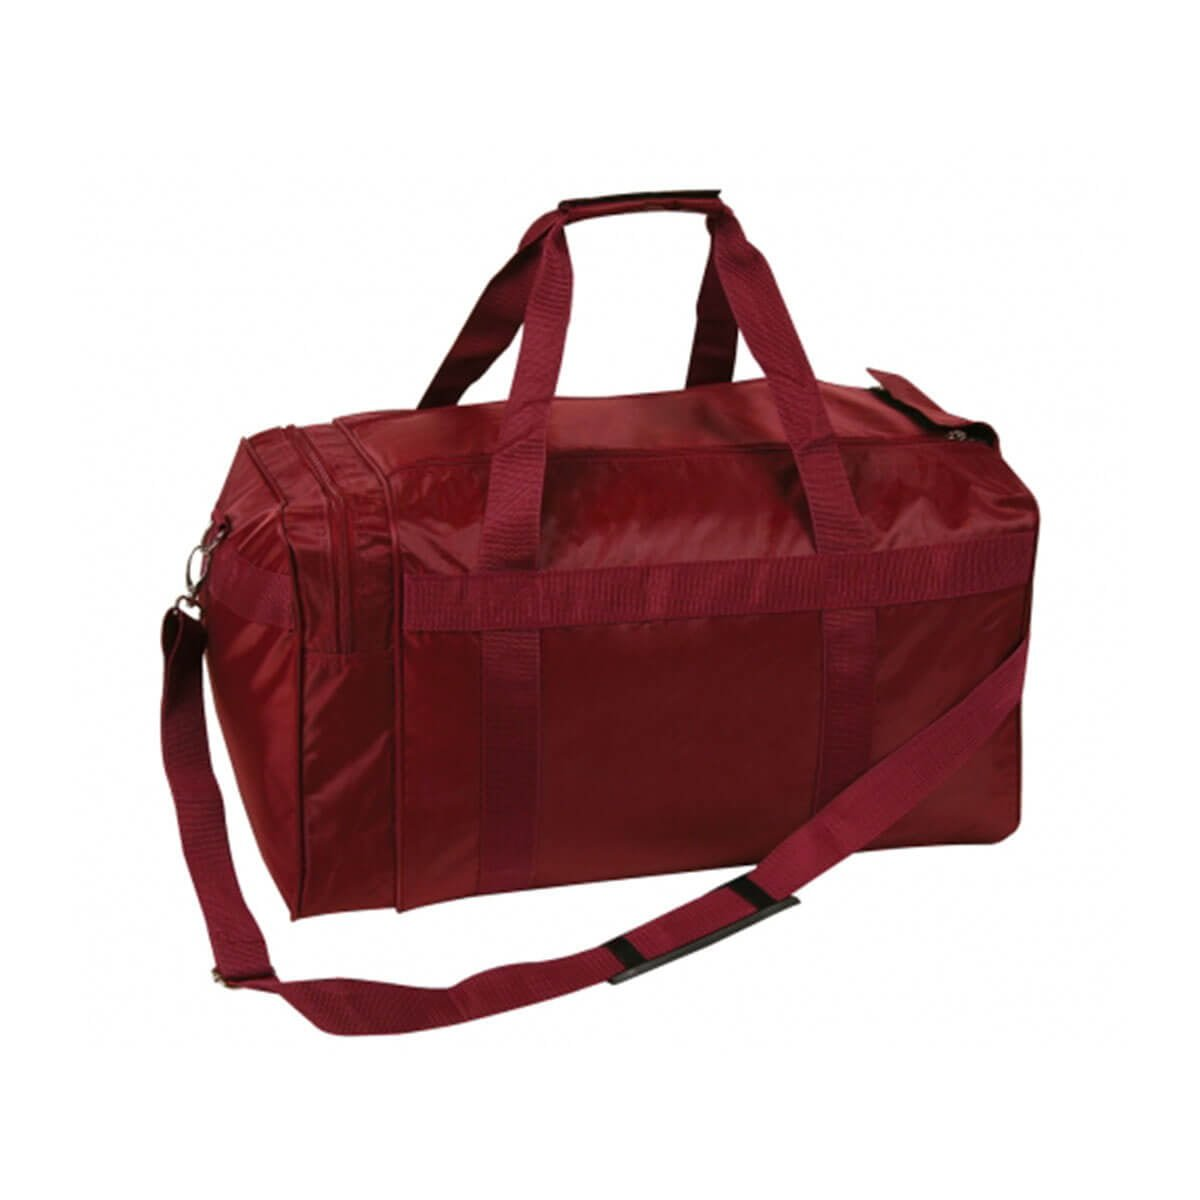 Nylon Sports Bag-Maroon